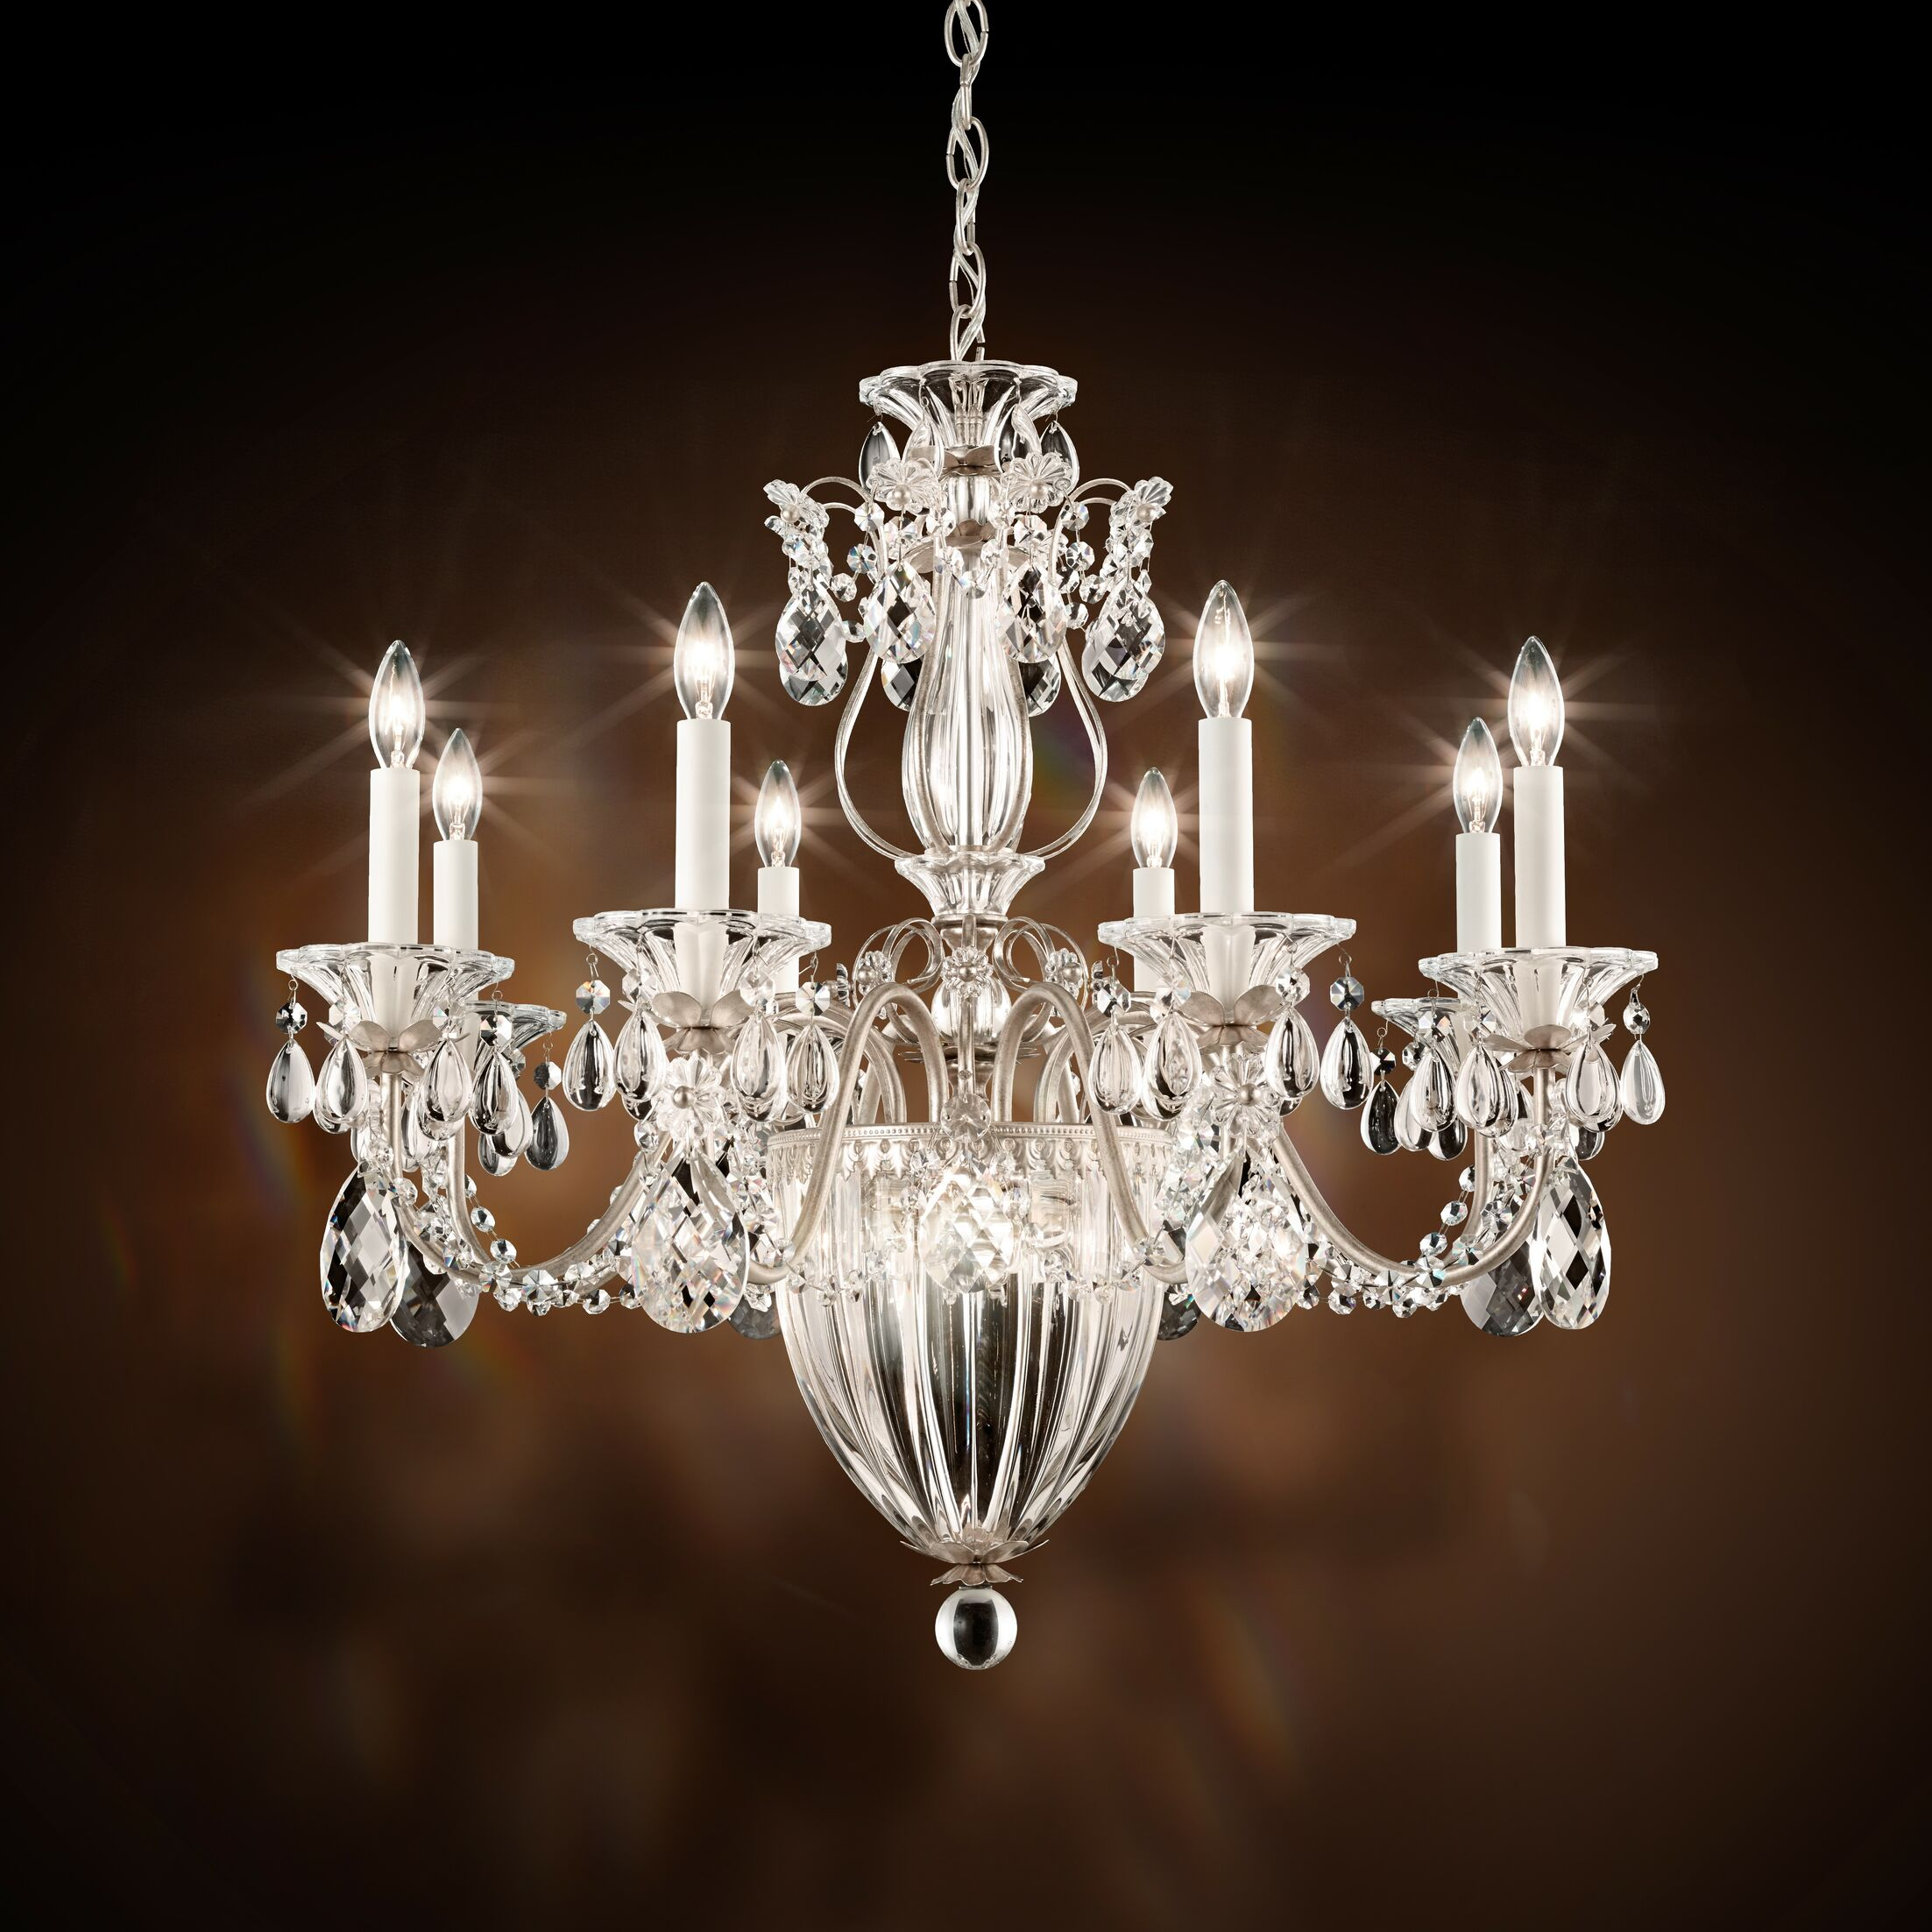 Bagatelle 8-Light Chandelier Finish: French Gold, Crystal: Swarovski Clear Crystal